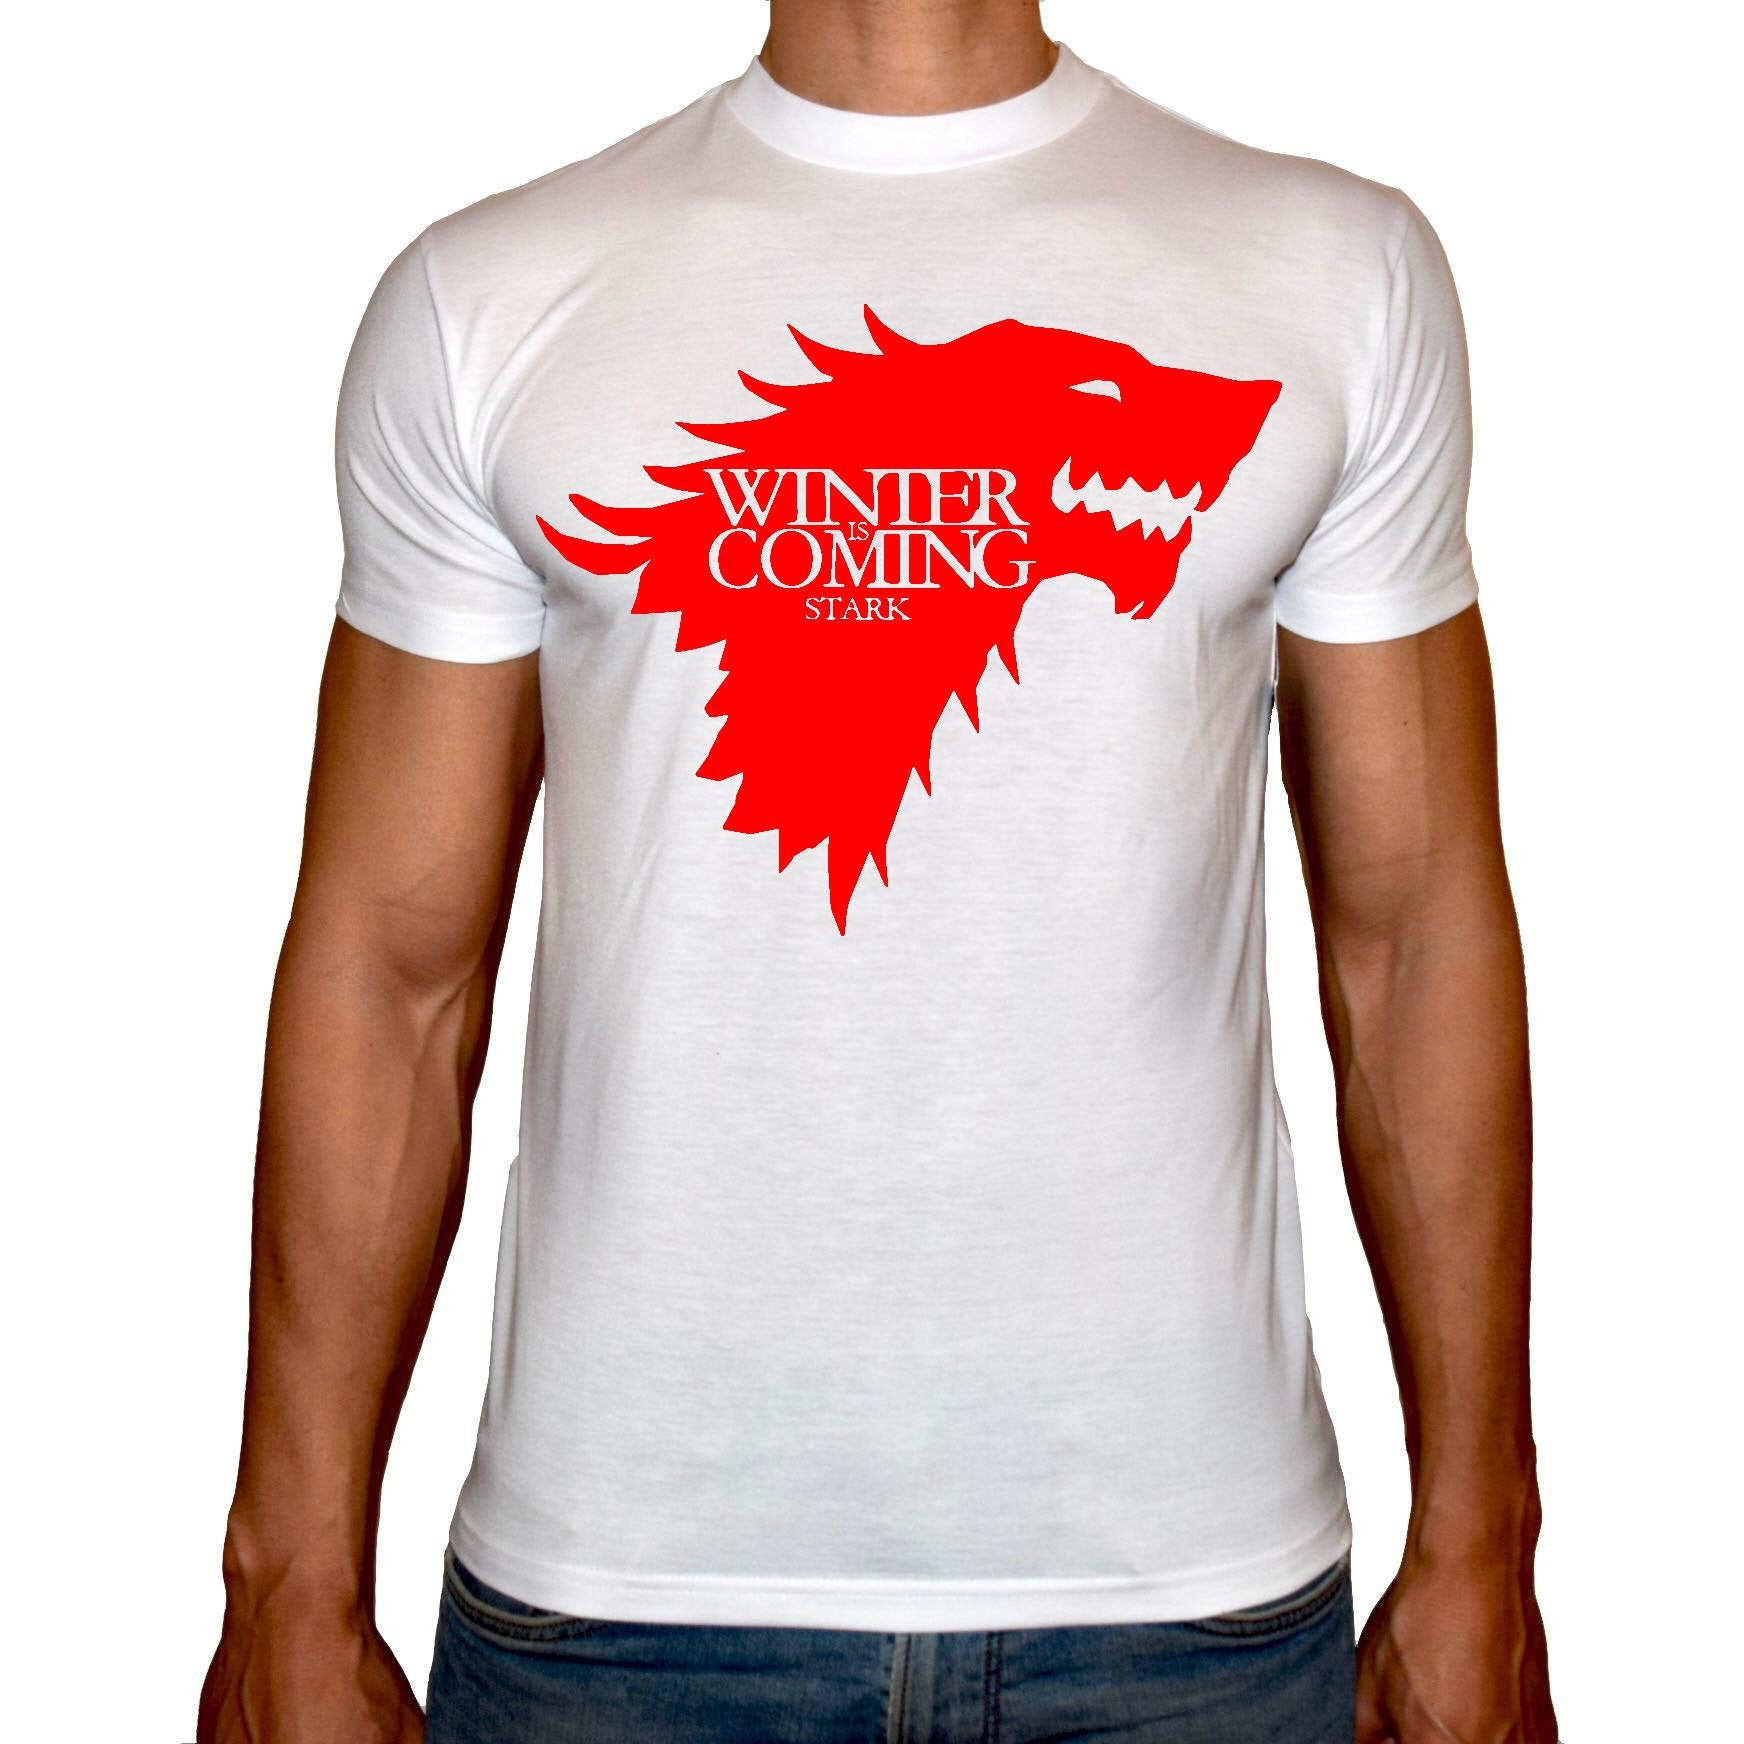 Phoenix WHITE Round Neck Printed T-Shirt Men (Game of thrones - Winter is coming)